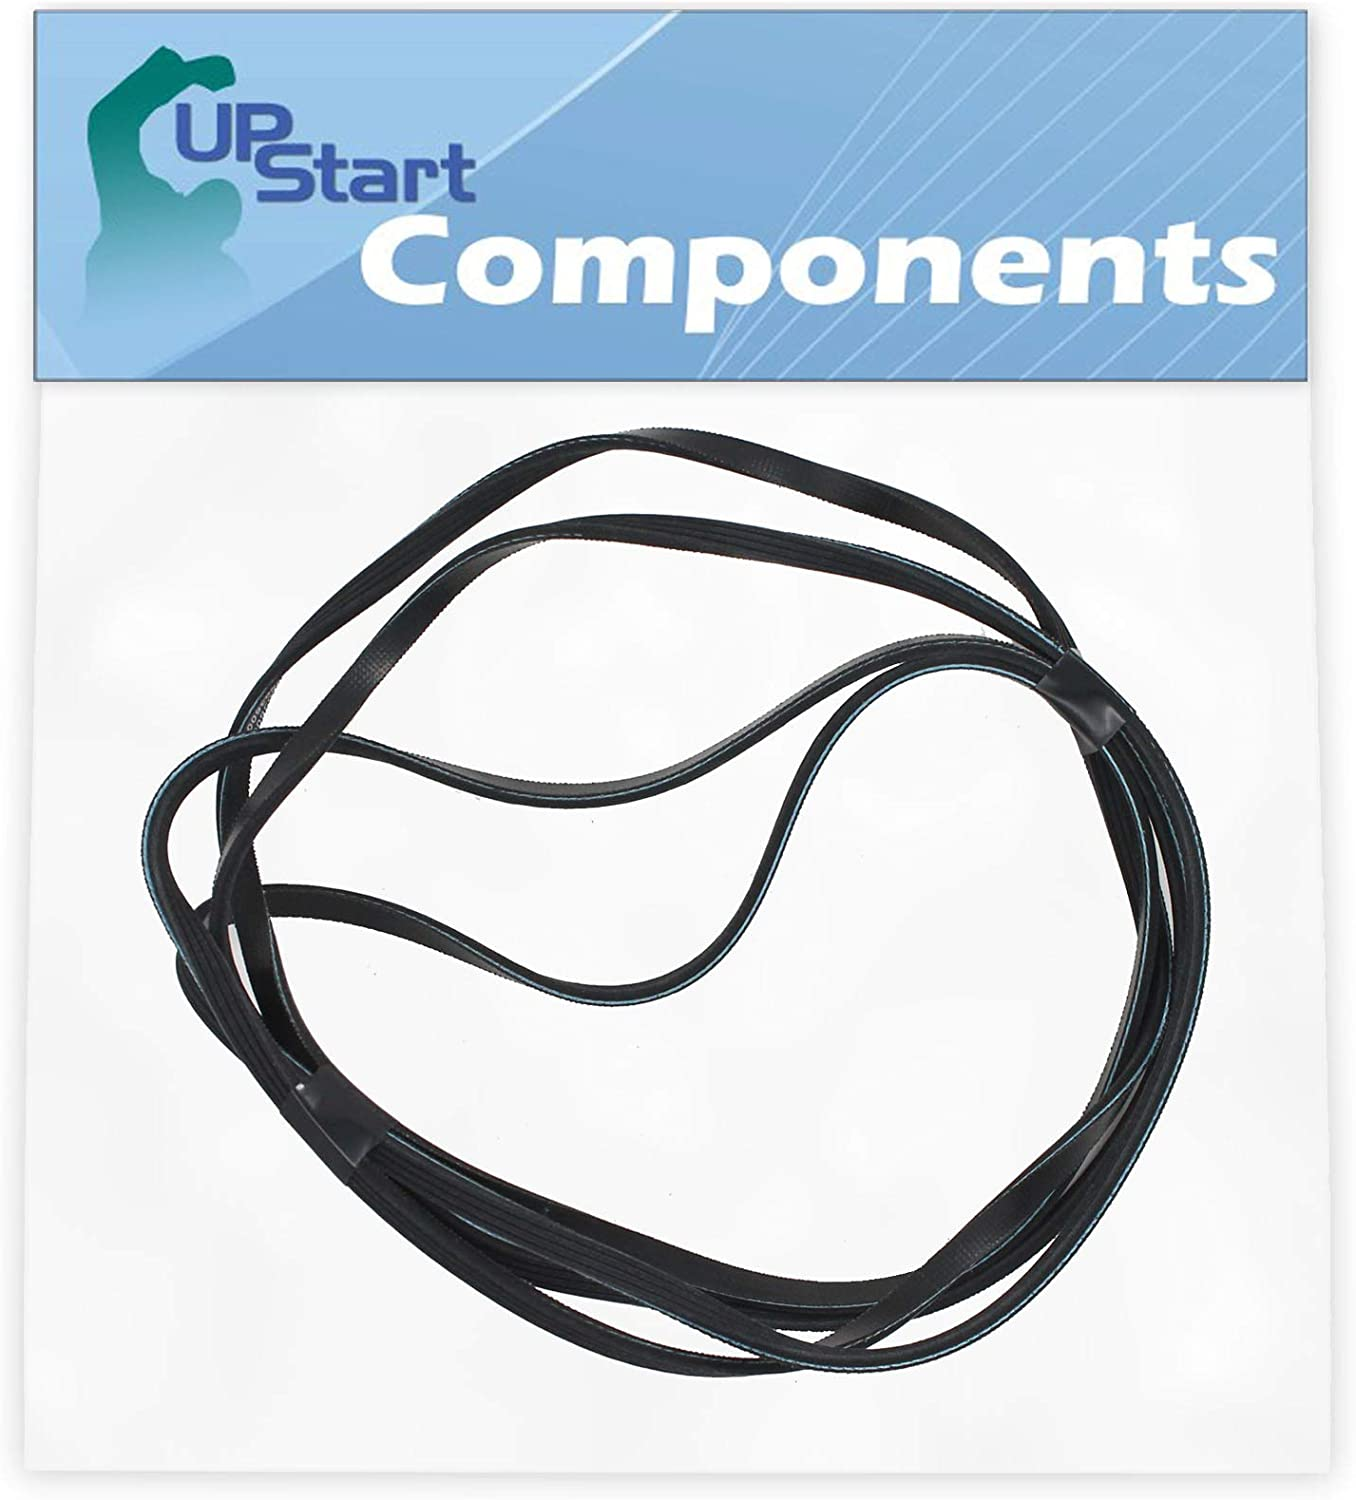 40111201 Dryer Belt Replacement for Admiral ADE7005AYW - Compatible with WP40111201 Drum Belt